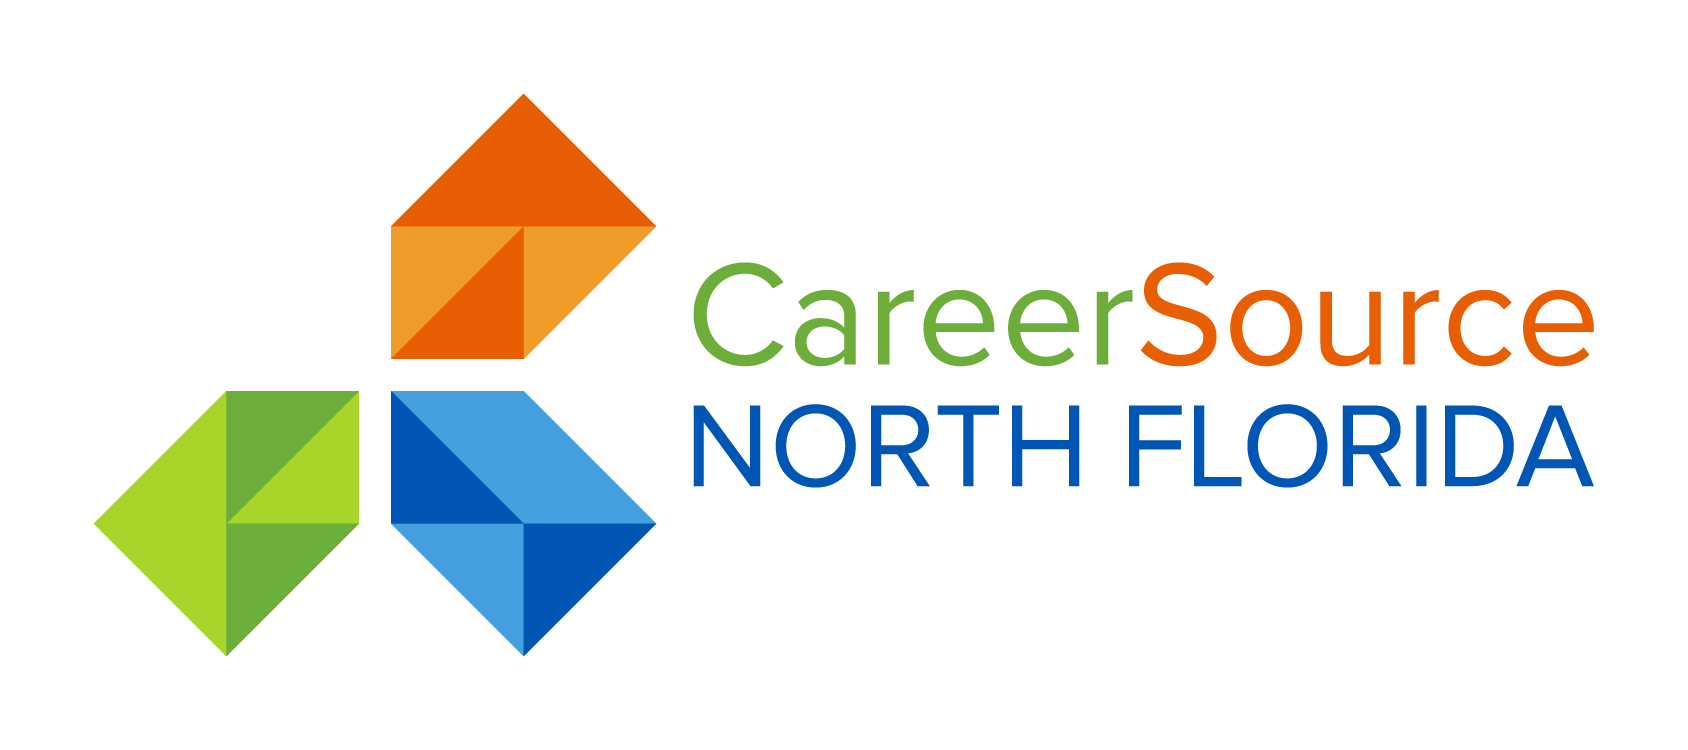 CareerSource North Florida